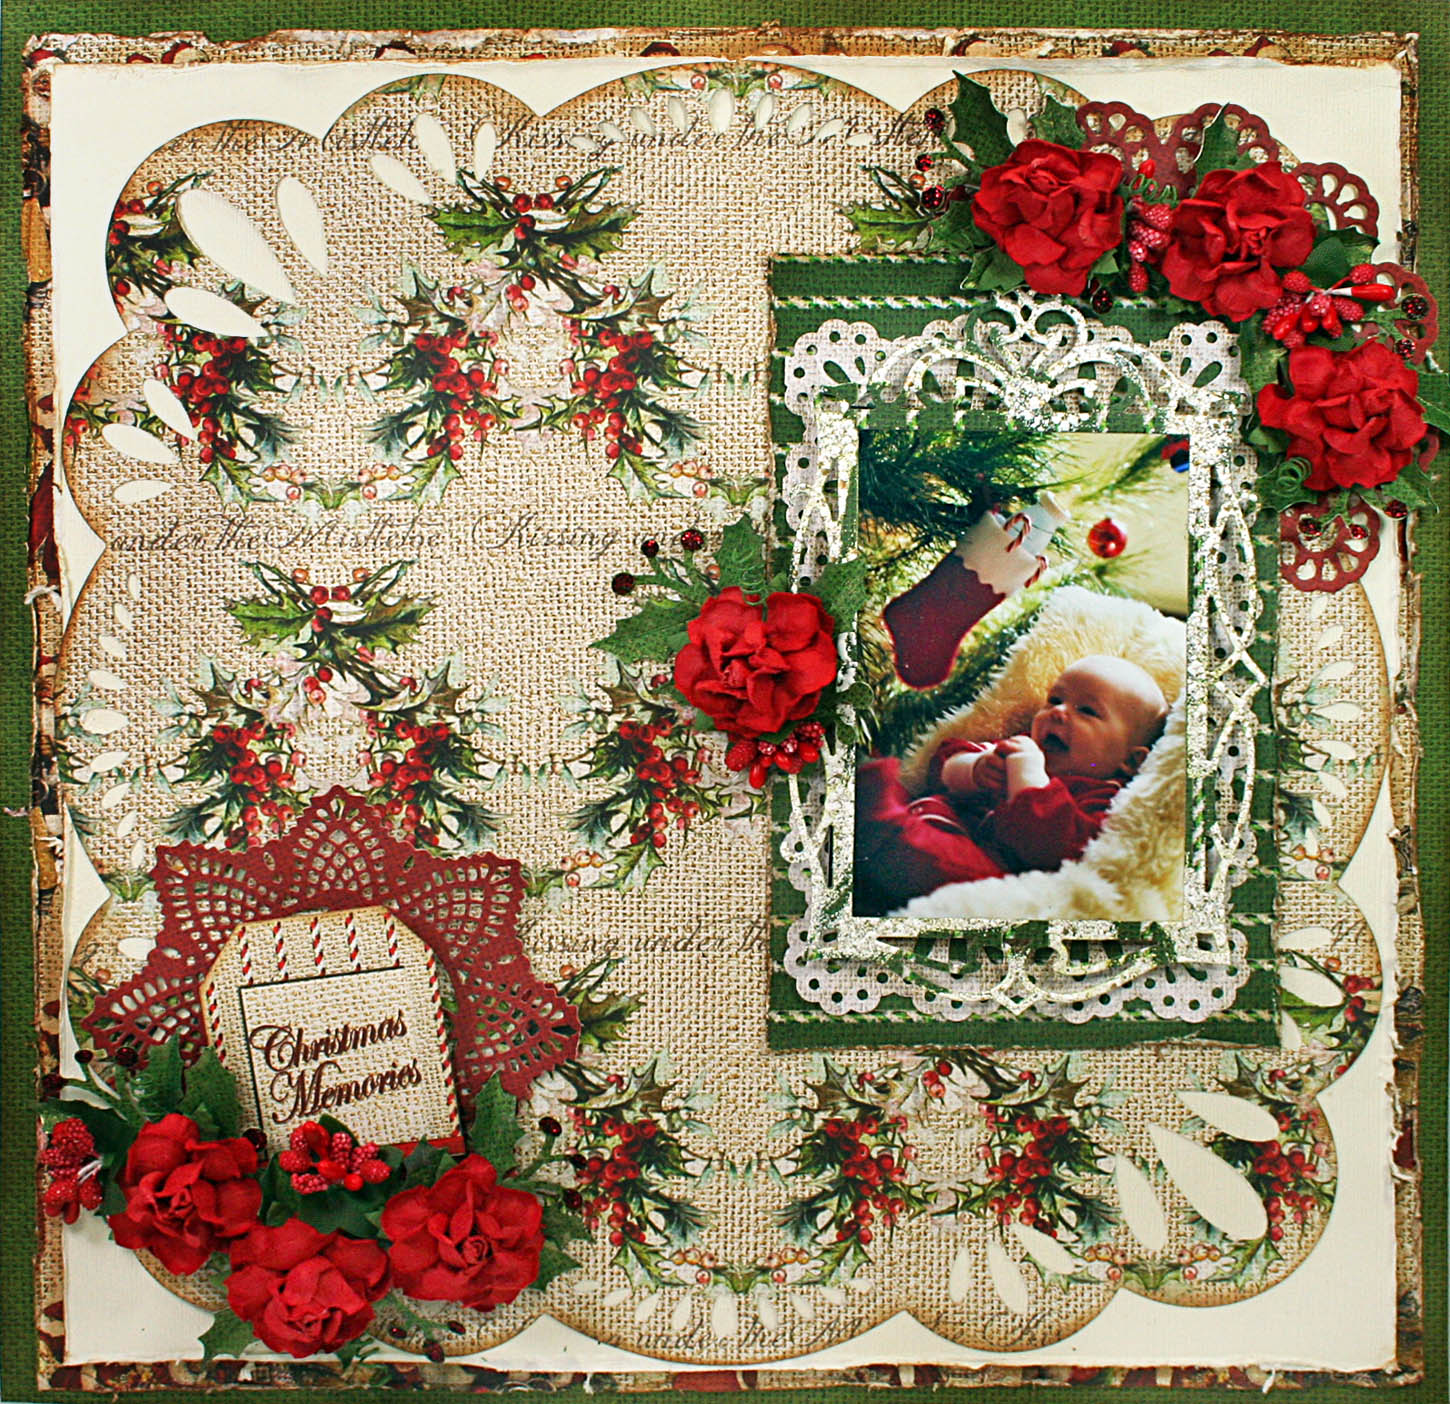 a christmas memory essay Unlike most editing & proofreading services, we edit for everything: grammar, spelling, punctuation, idea flow, sentence structure, & more get started now.